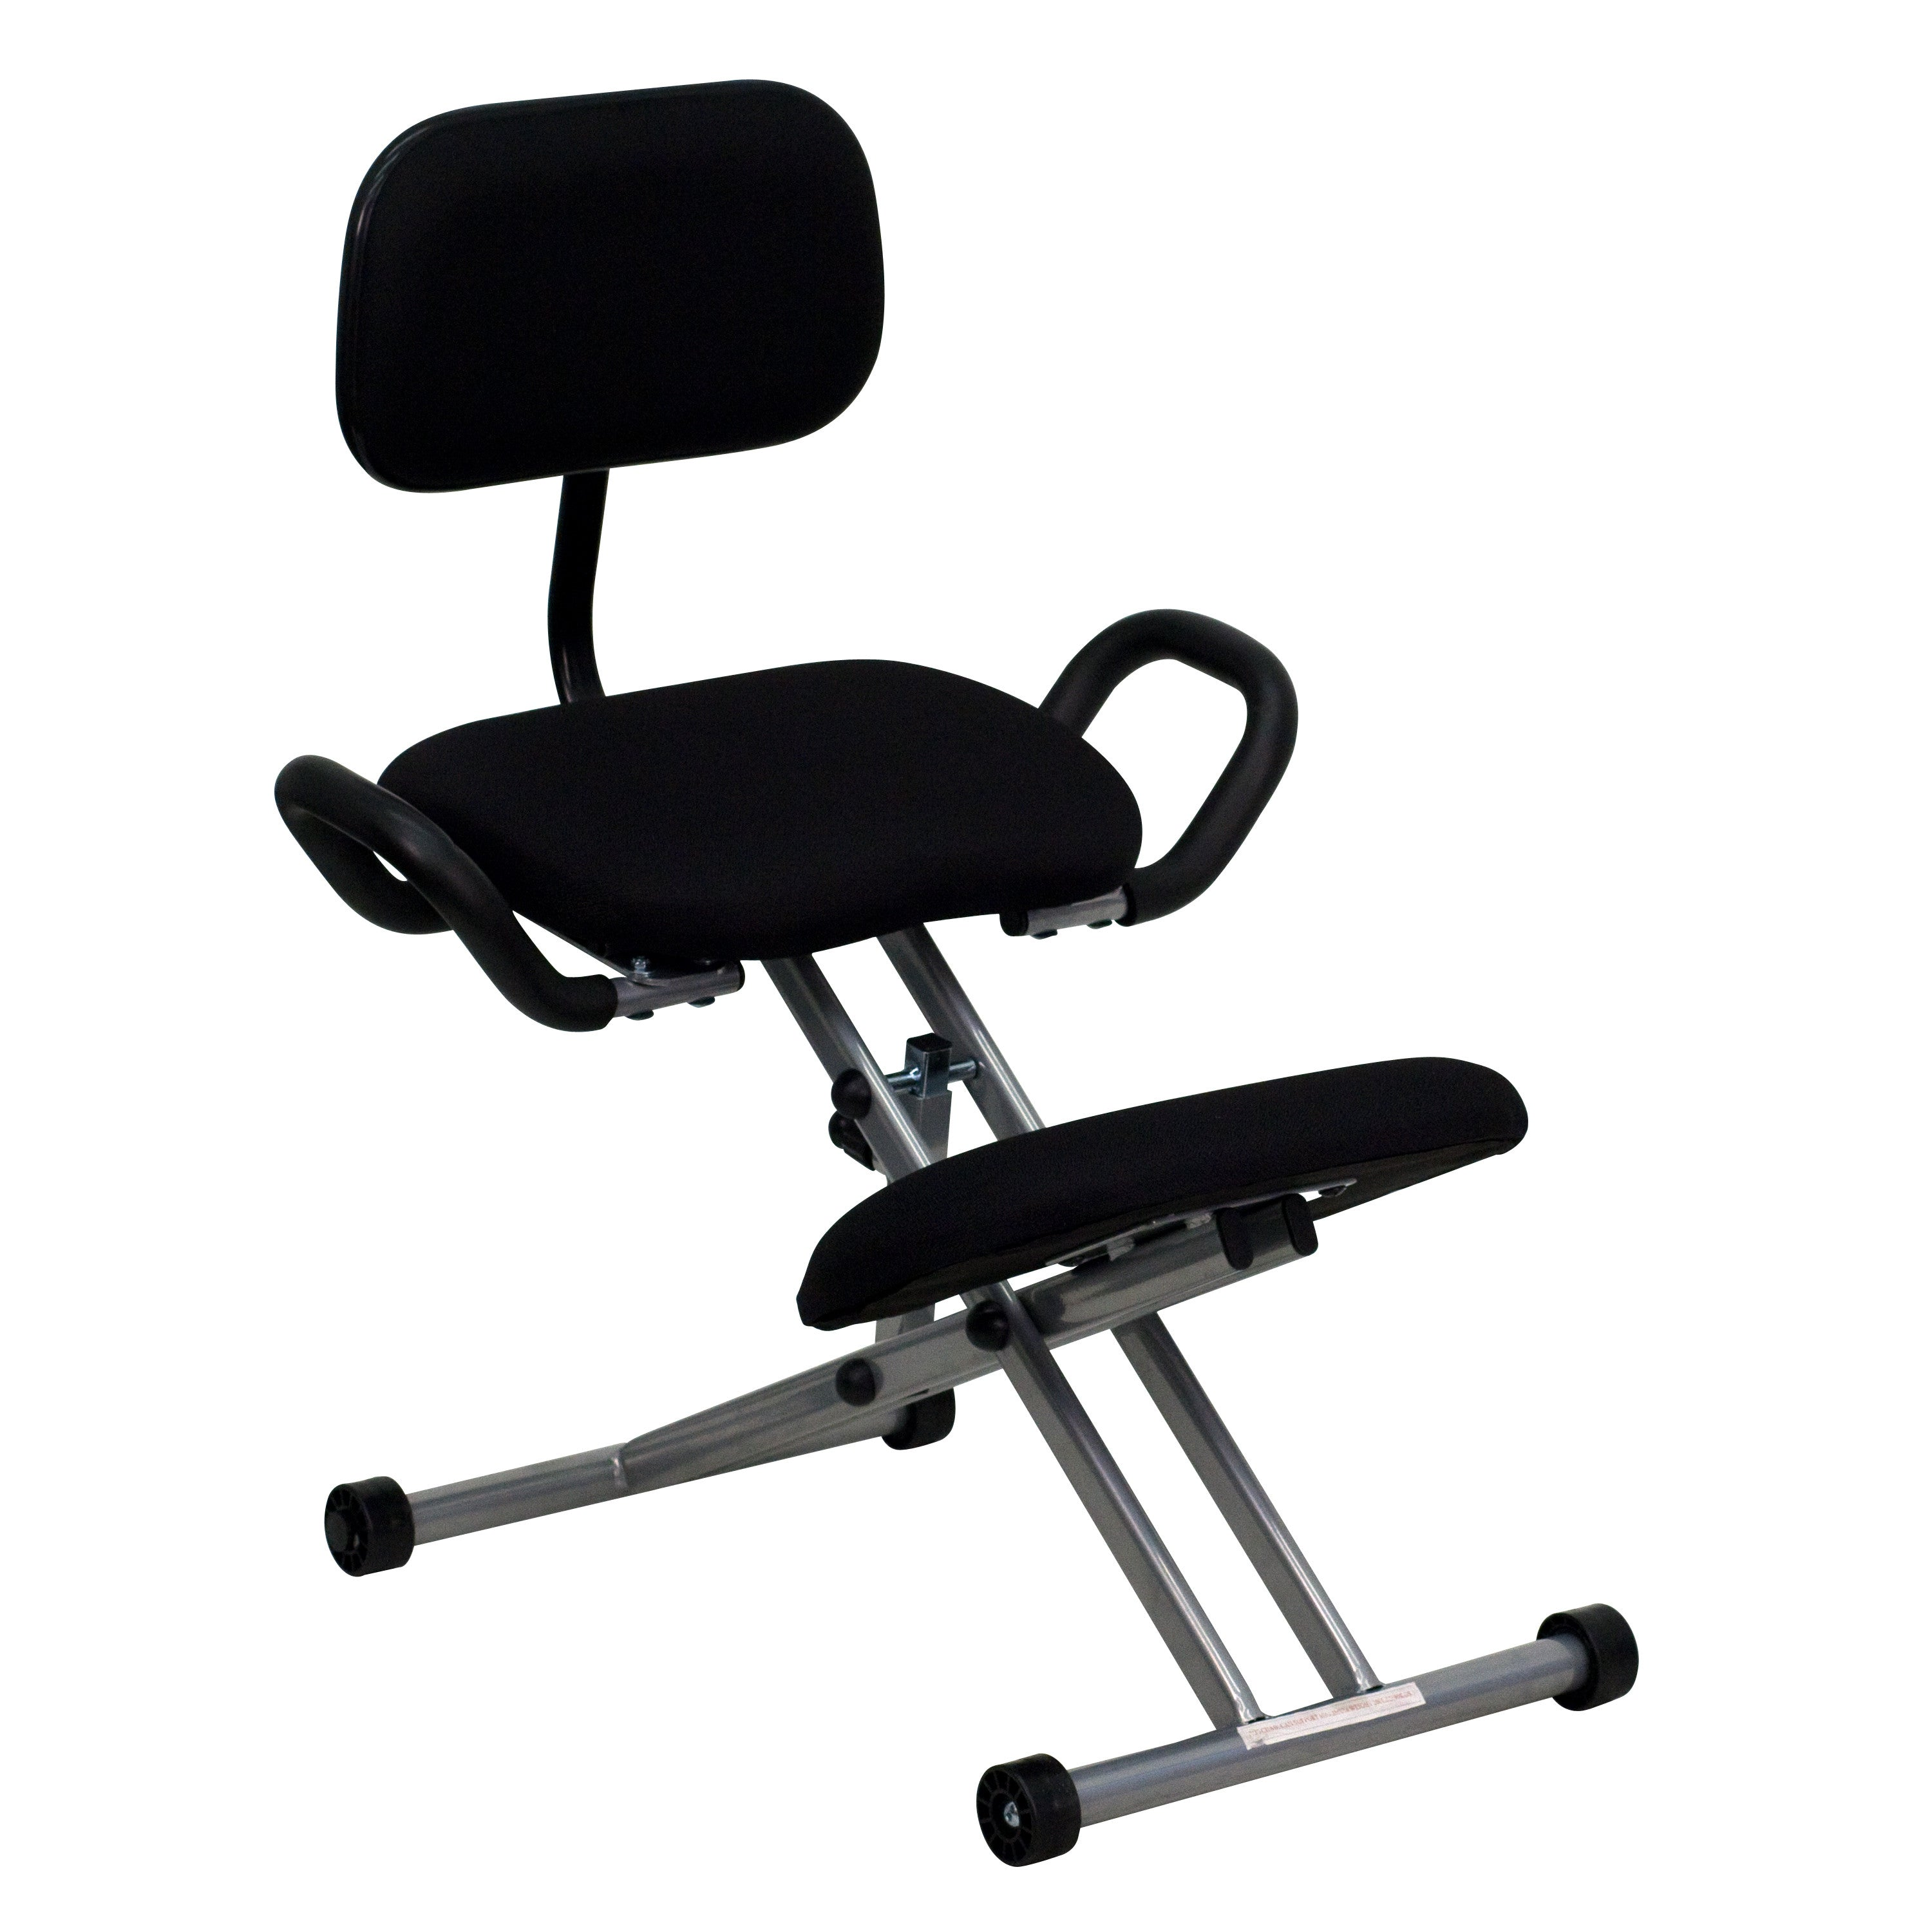 Ergonomic kneeling office chairs - Reduce Lower Back Strain And Regain Your Body S Natural Posture With This Ergonomic Kneeling Chair With